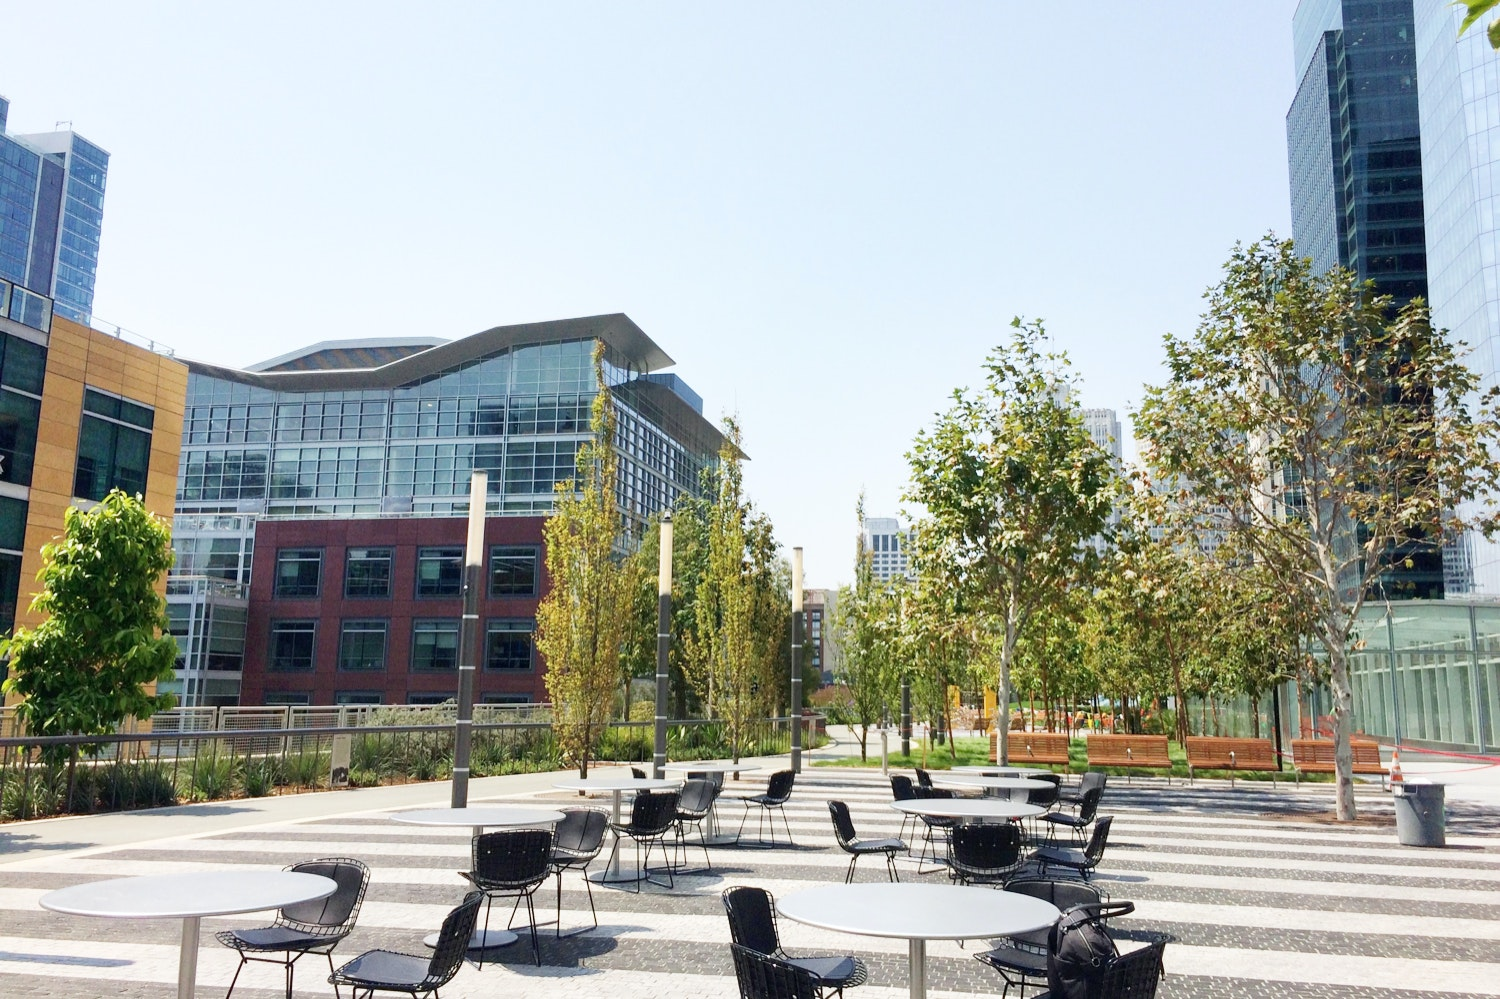 The Main Plaza in Salesforce Park provides plenty of open space to share coffee with a friend, snack on a treat from a food truck, or even meditate in the morning.